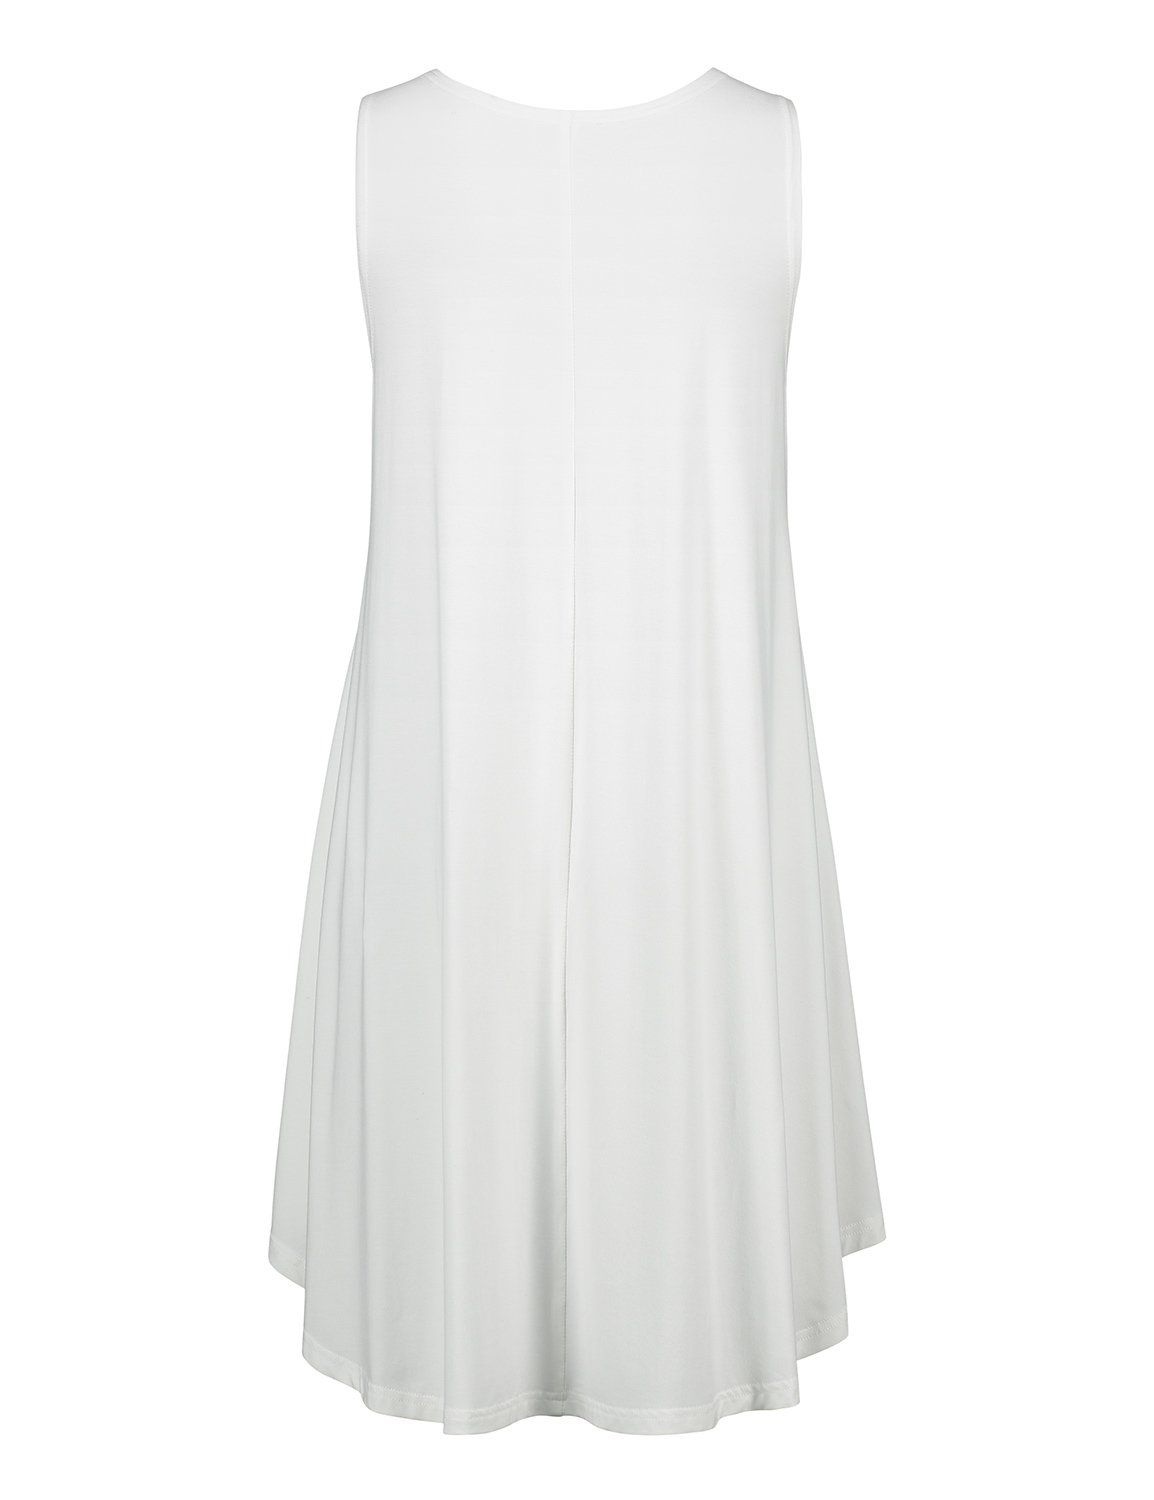 9a0e2bd8cade STYLE Womens Loose Fit Sleeveless T Shirt Dress Swing Tunic Tank Top XLarge  Milk White   More info could be found at the image url.